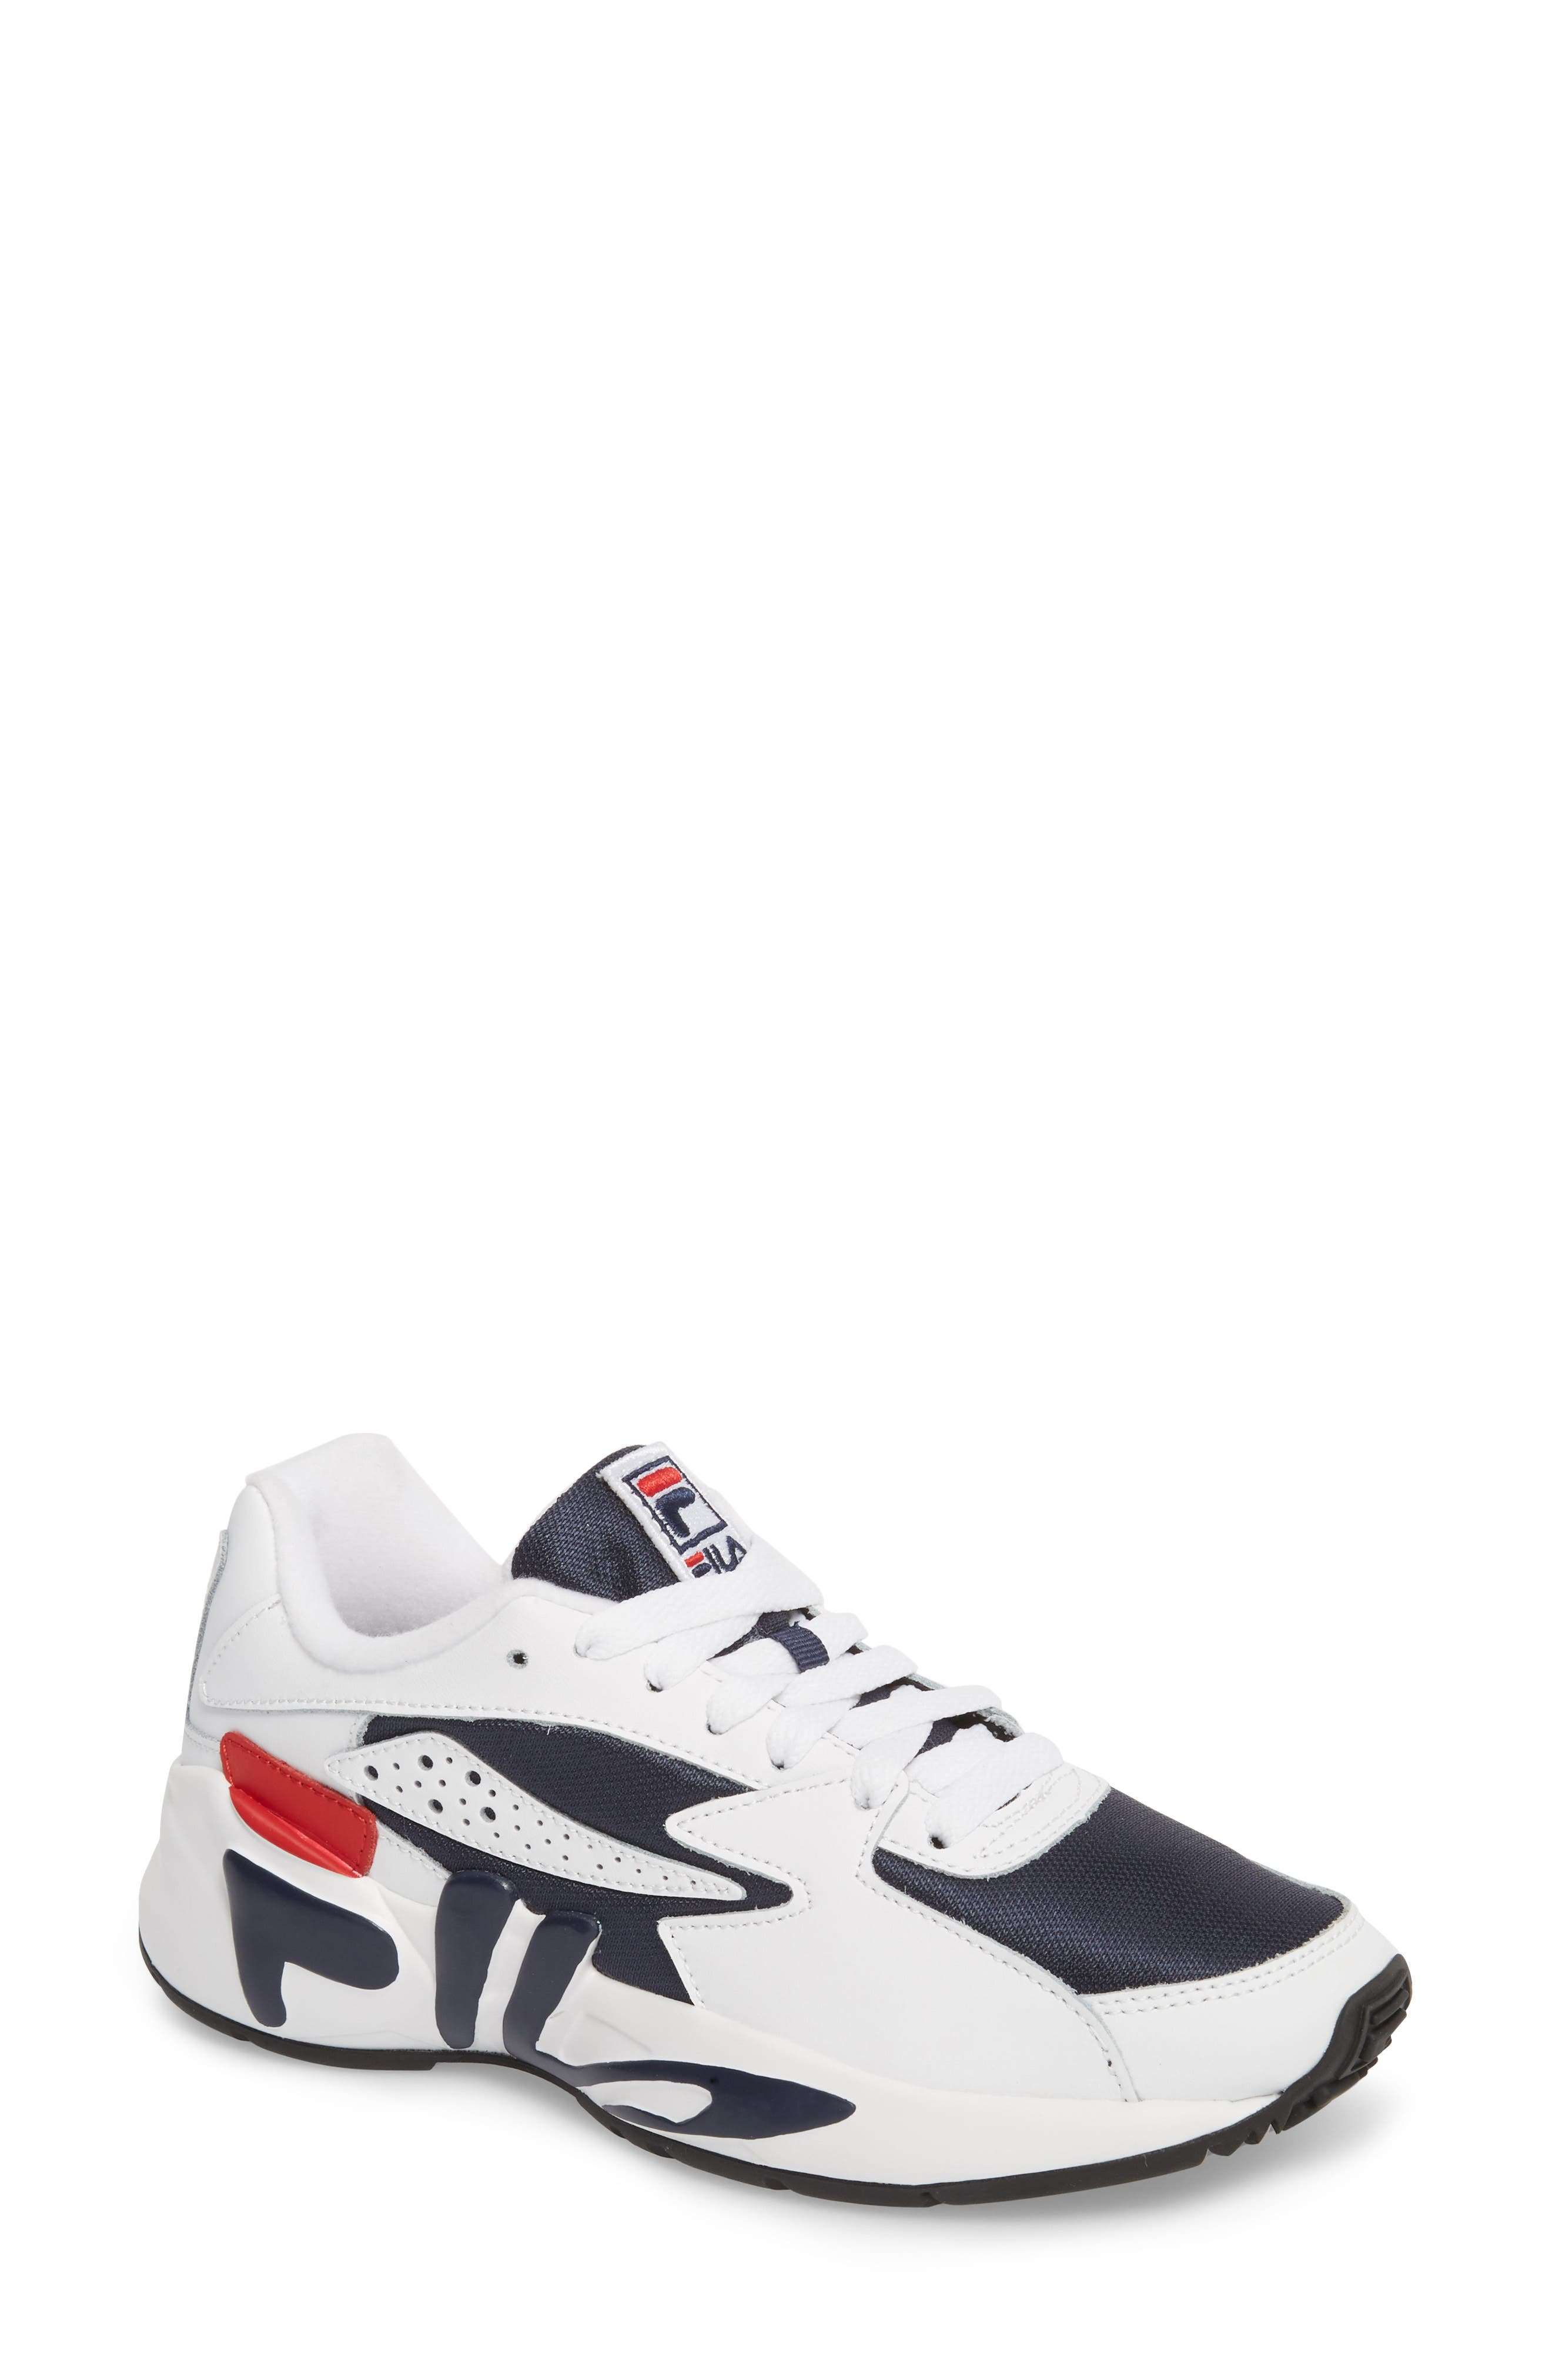 Mindblower Shoe,                             Main thumbnail 1, color,                             WHT/ FNVY/ FRED